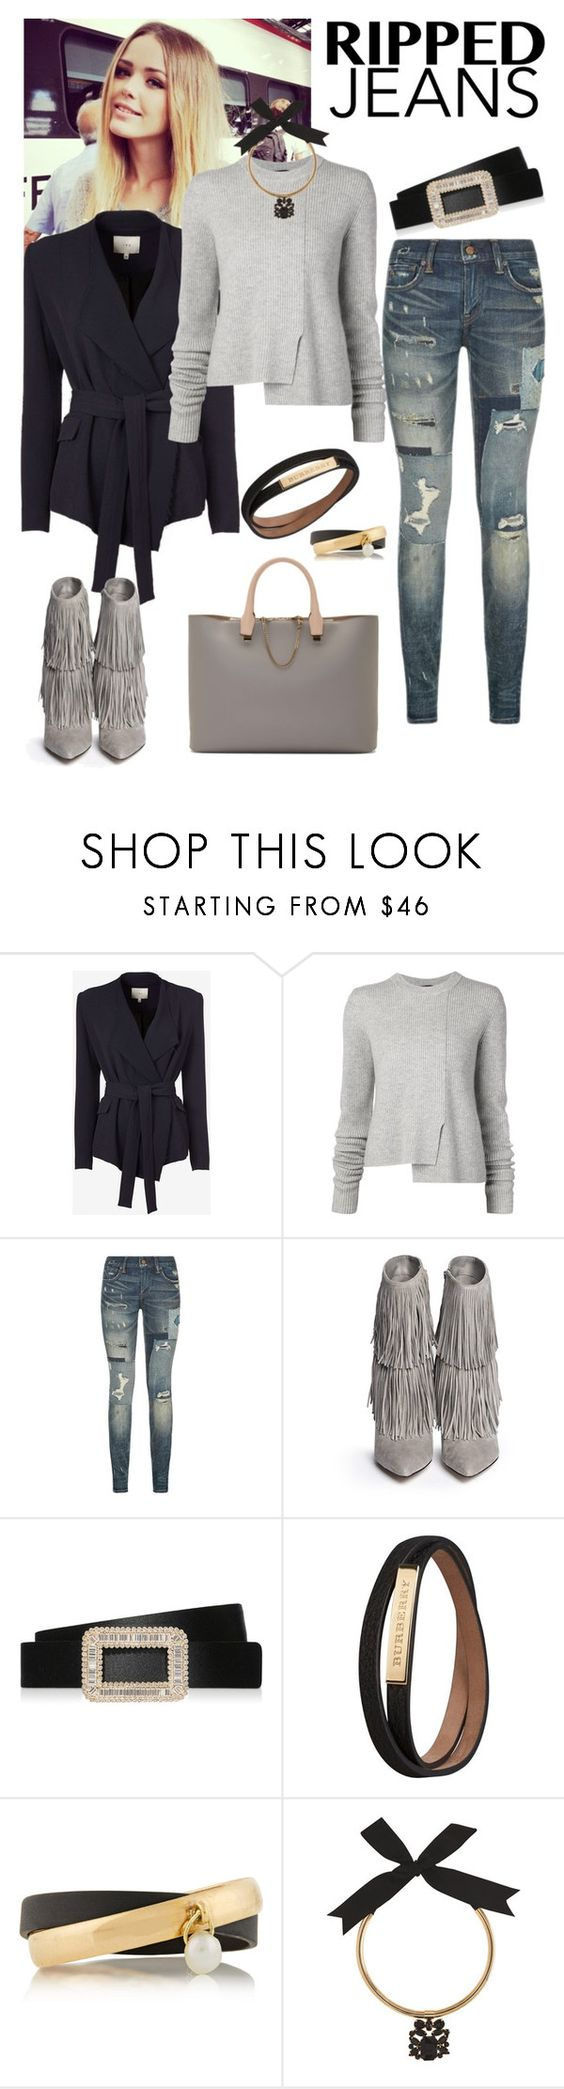 """DOH Style 'Style This Trend: Ripped Jeans II'"" by dohinstyle ❤ liked on Polyvore featuring IRO, Proenza Schouler, Polo Ralph Lauren, Sam Edelman, Roger Vivier, Burberry, Inez & Vinoodh, Coast and Chloé"